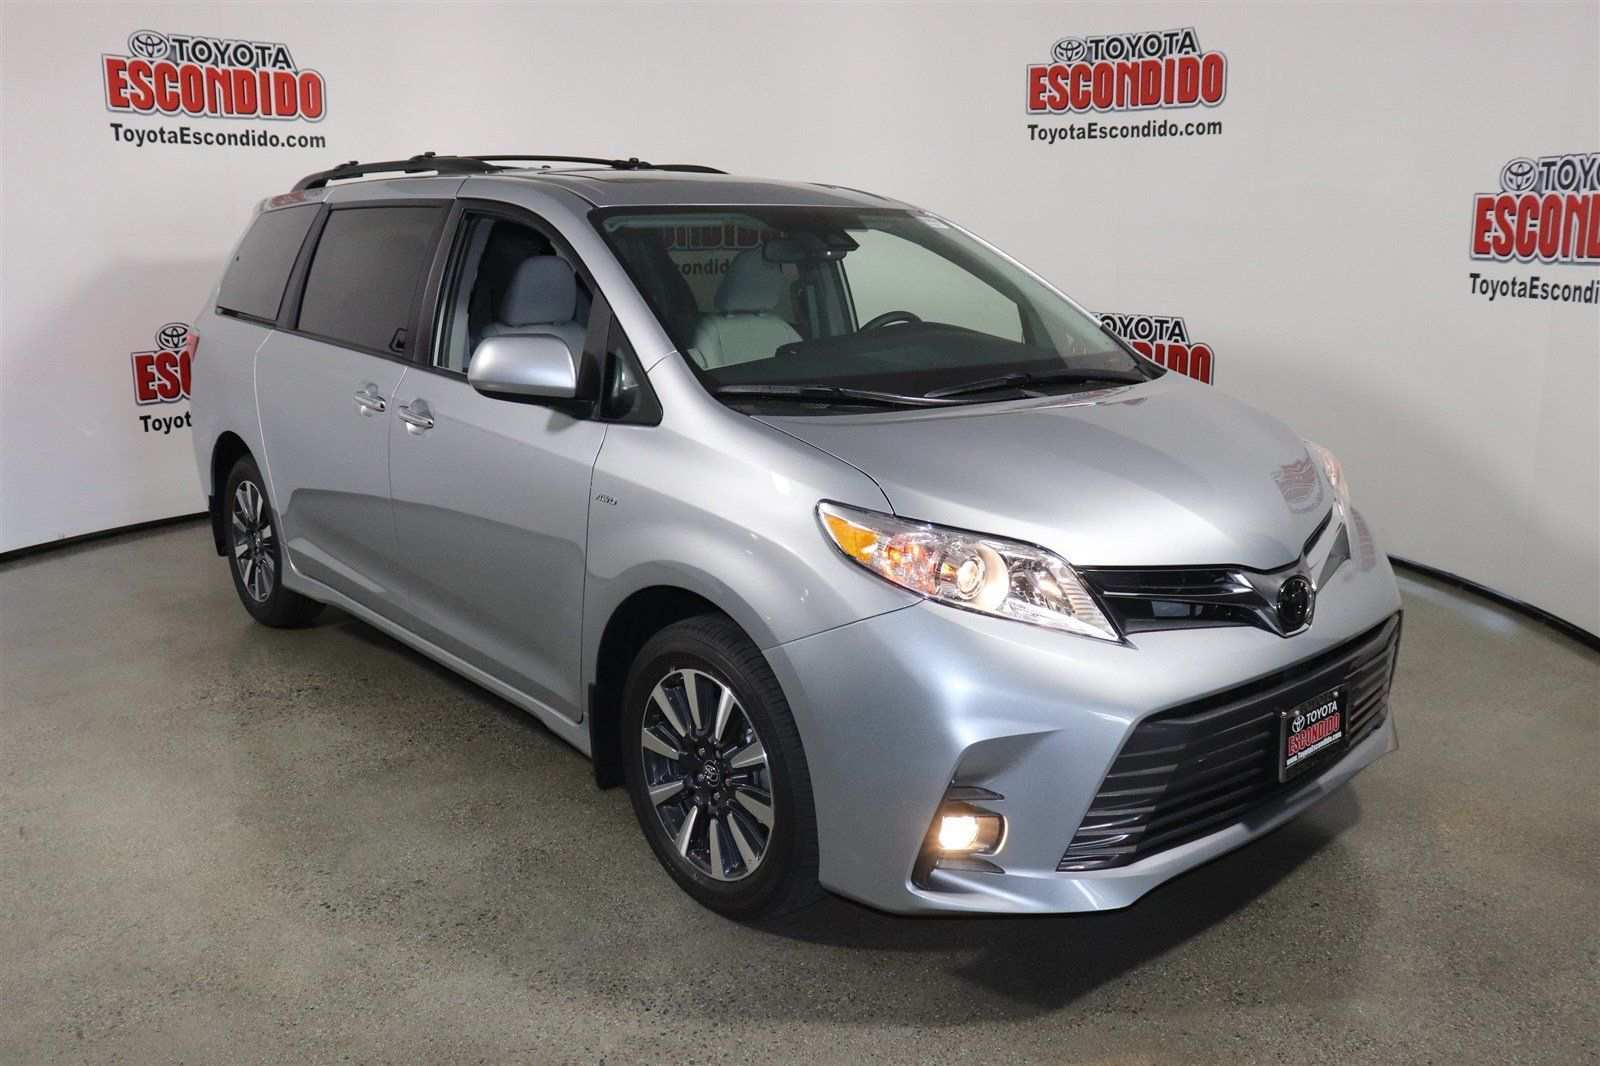 49 Concept of The Toyota 2019 Van Concept Specs with The Toyota 2019 Van Concept